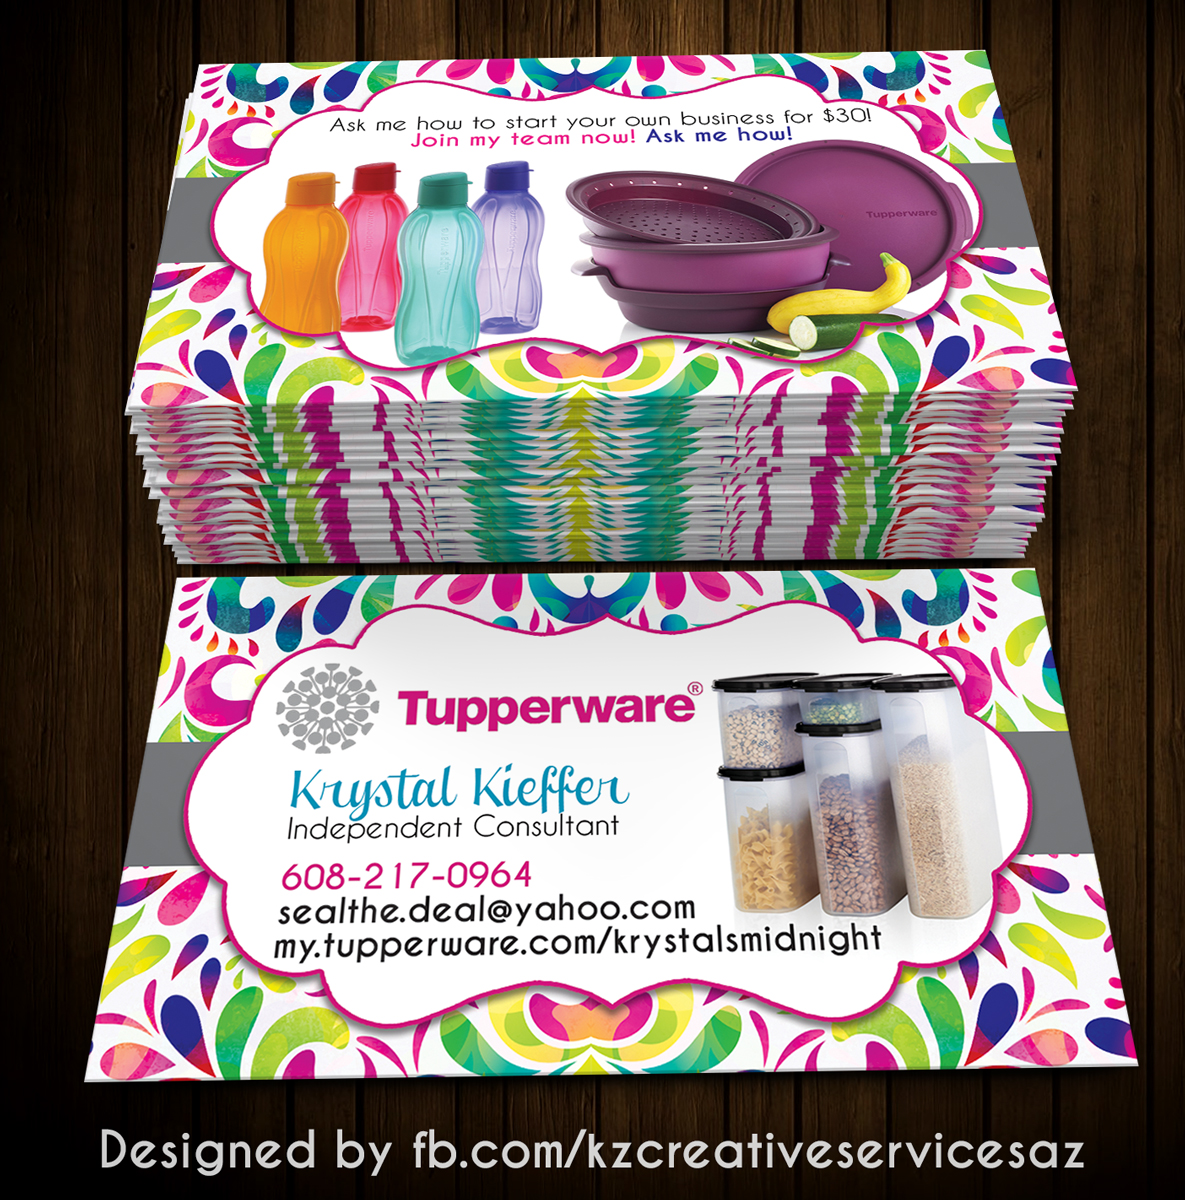 tupperware business cards style 5 - Tupperware Business Cards